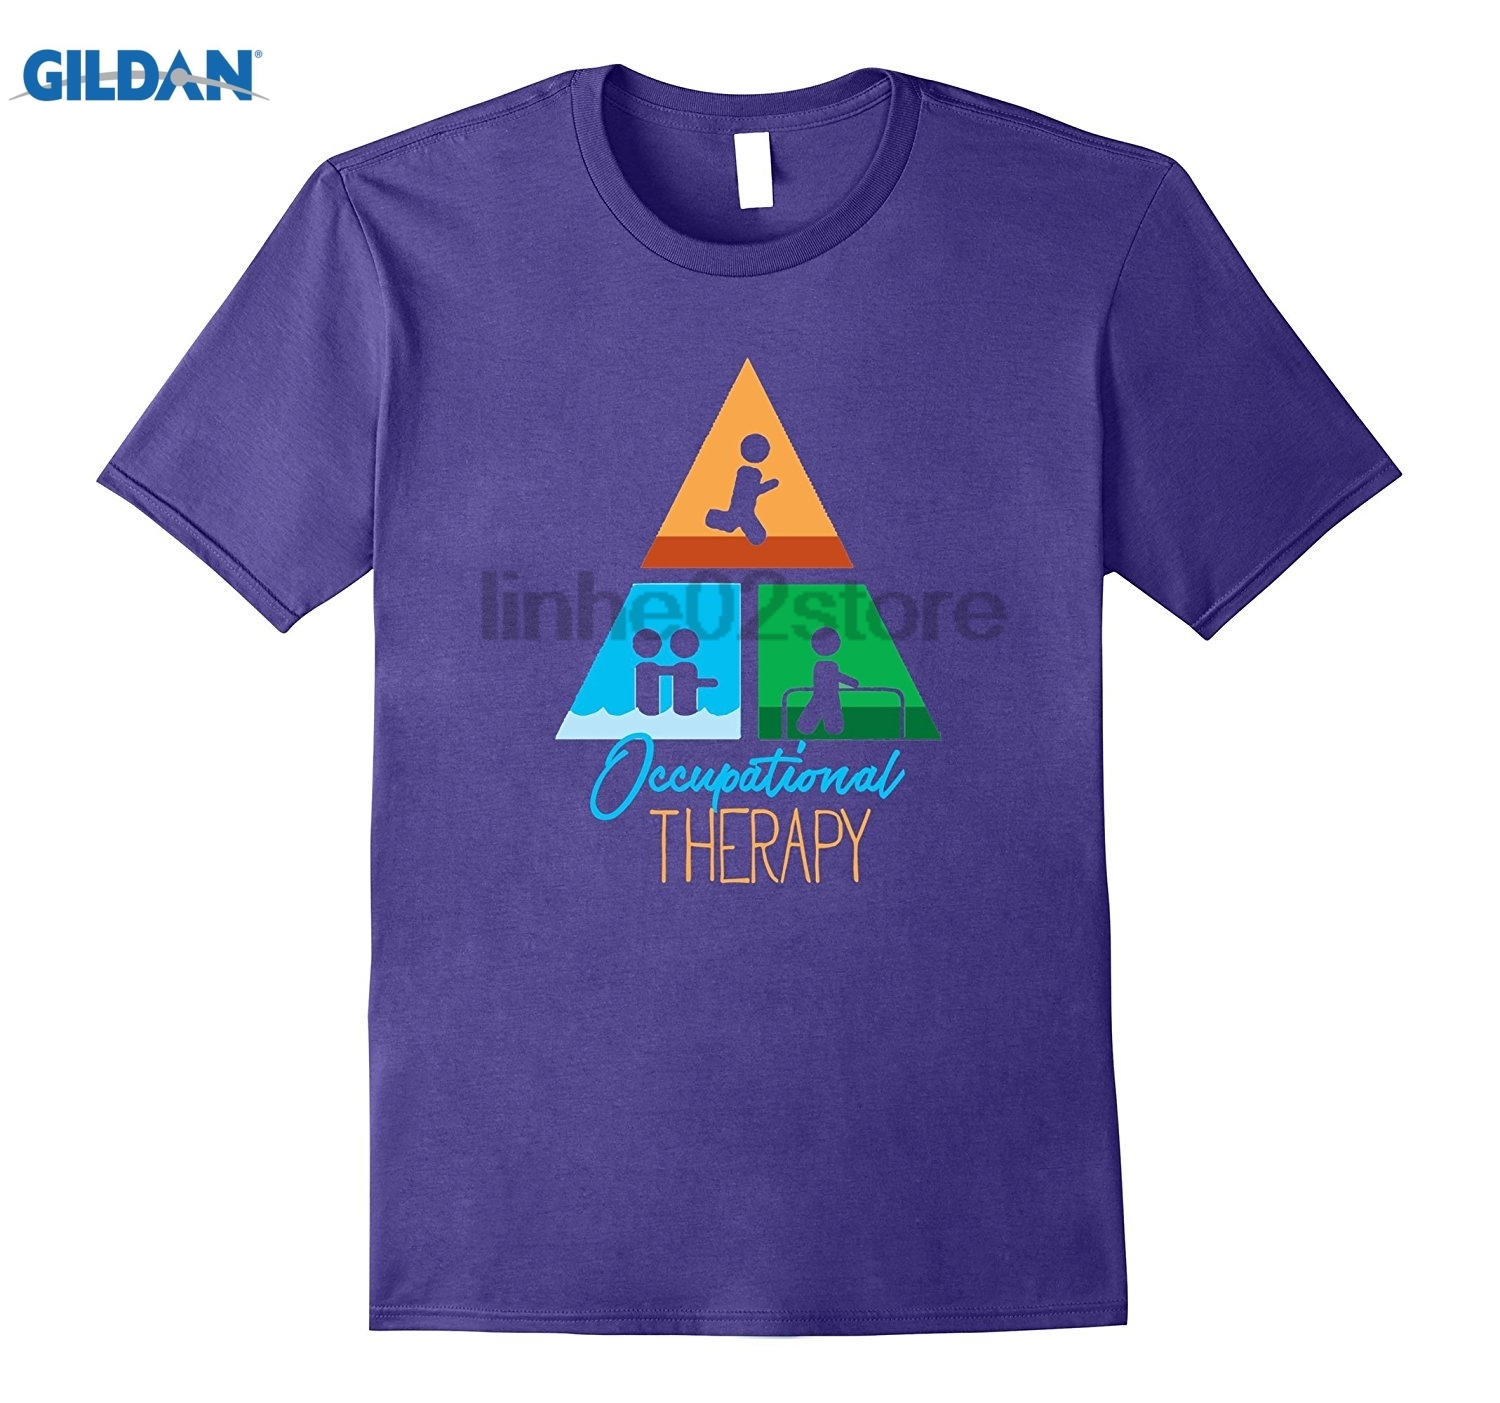 GILDAN Occupational Therapy T-Shirt Recovery Physical Therapist Tee Mothers Day Ms. T-sh ...